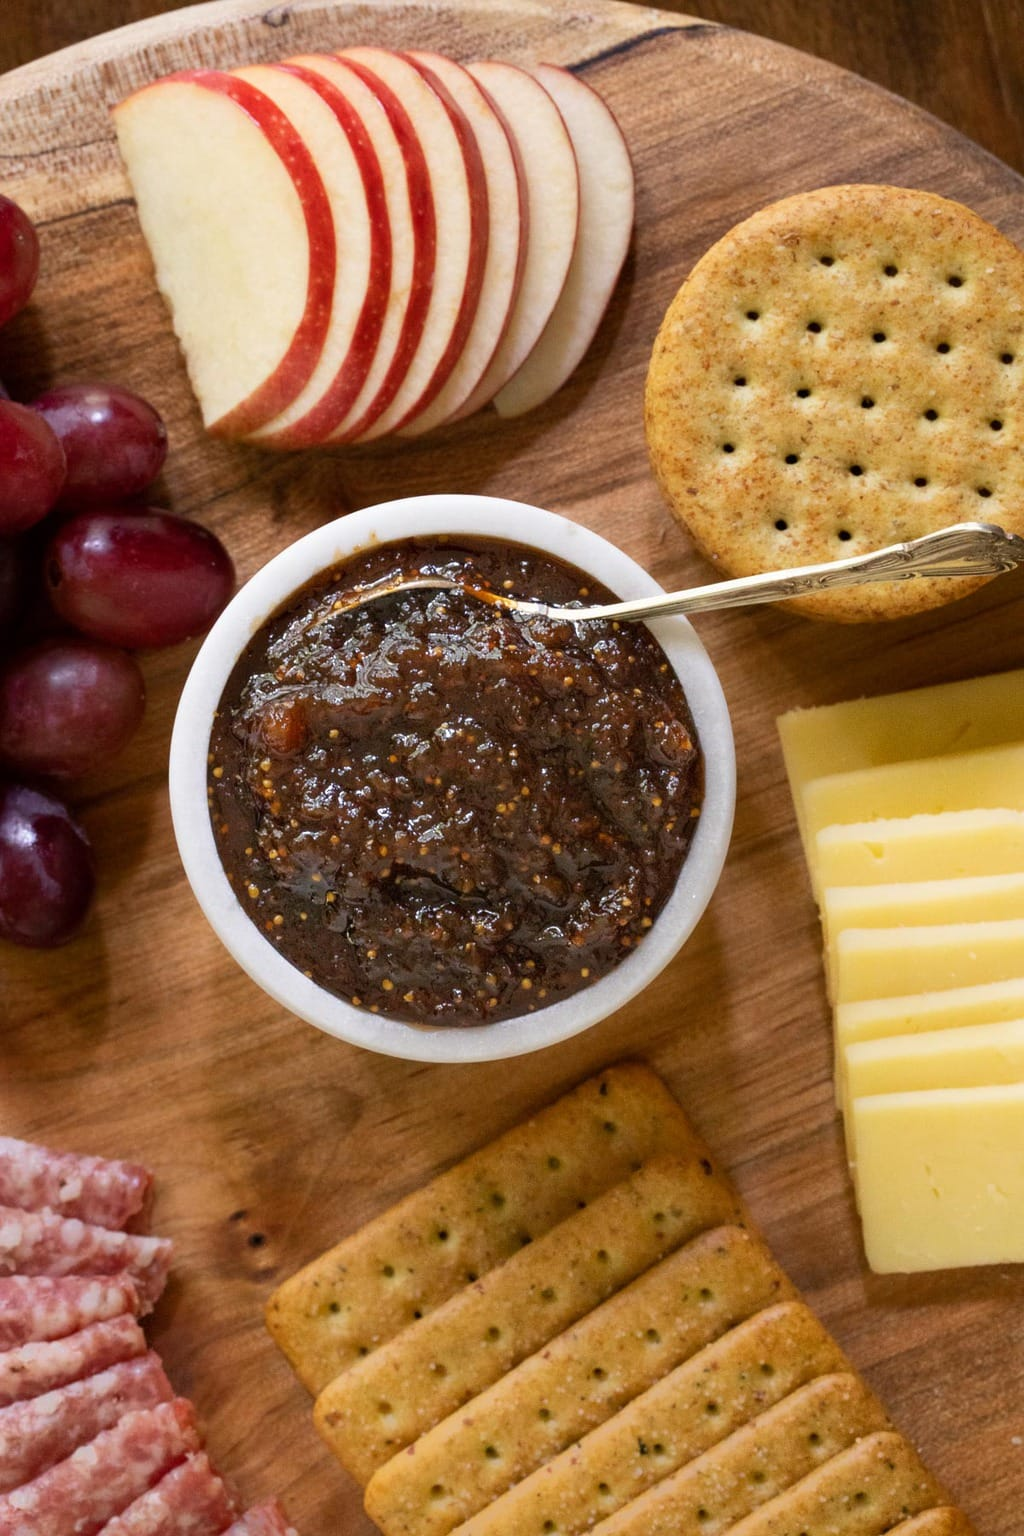 Overhead vertical photo of a wood appetizer tray featuring Sweet and Spicy Fig Spread and surrounded by sliced apples, grapes, crackers, cheese and sausage.